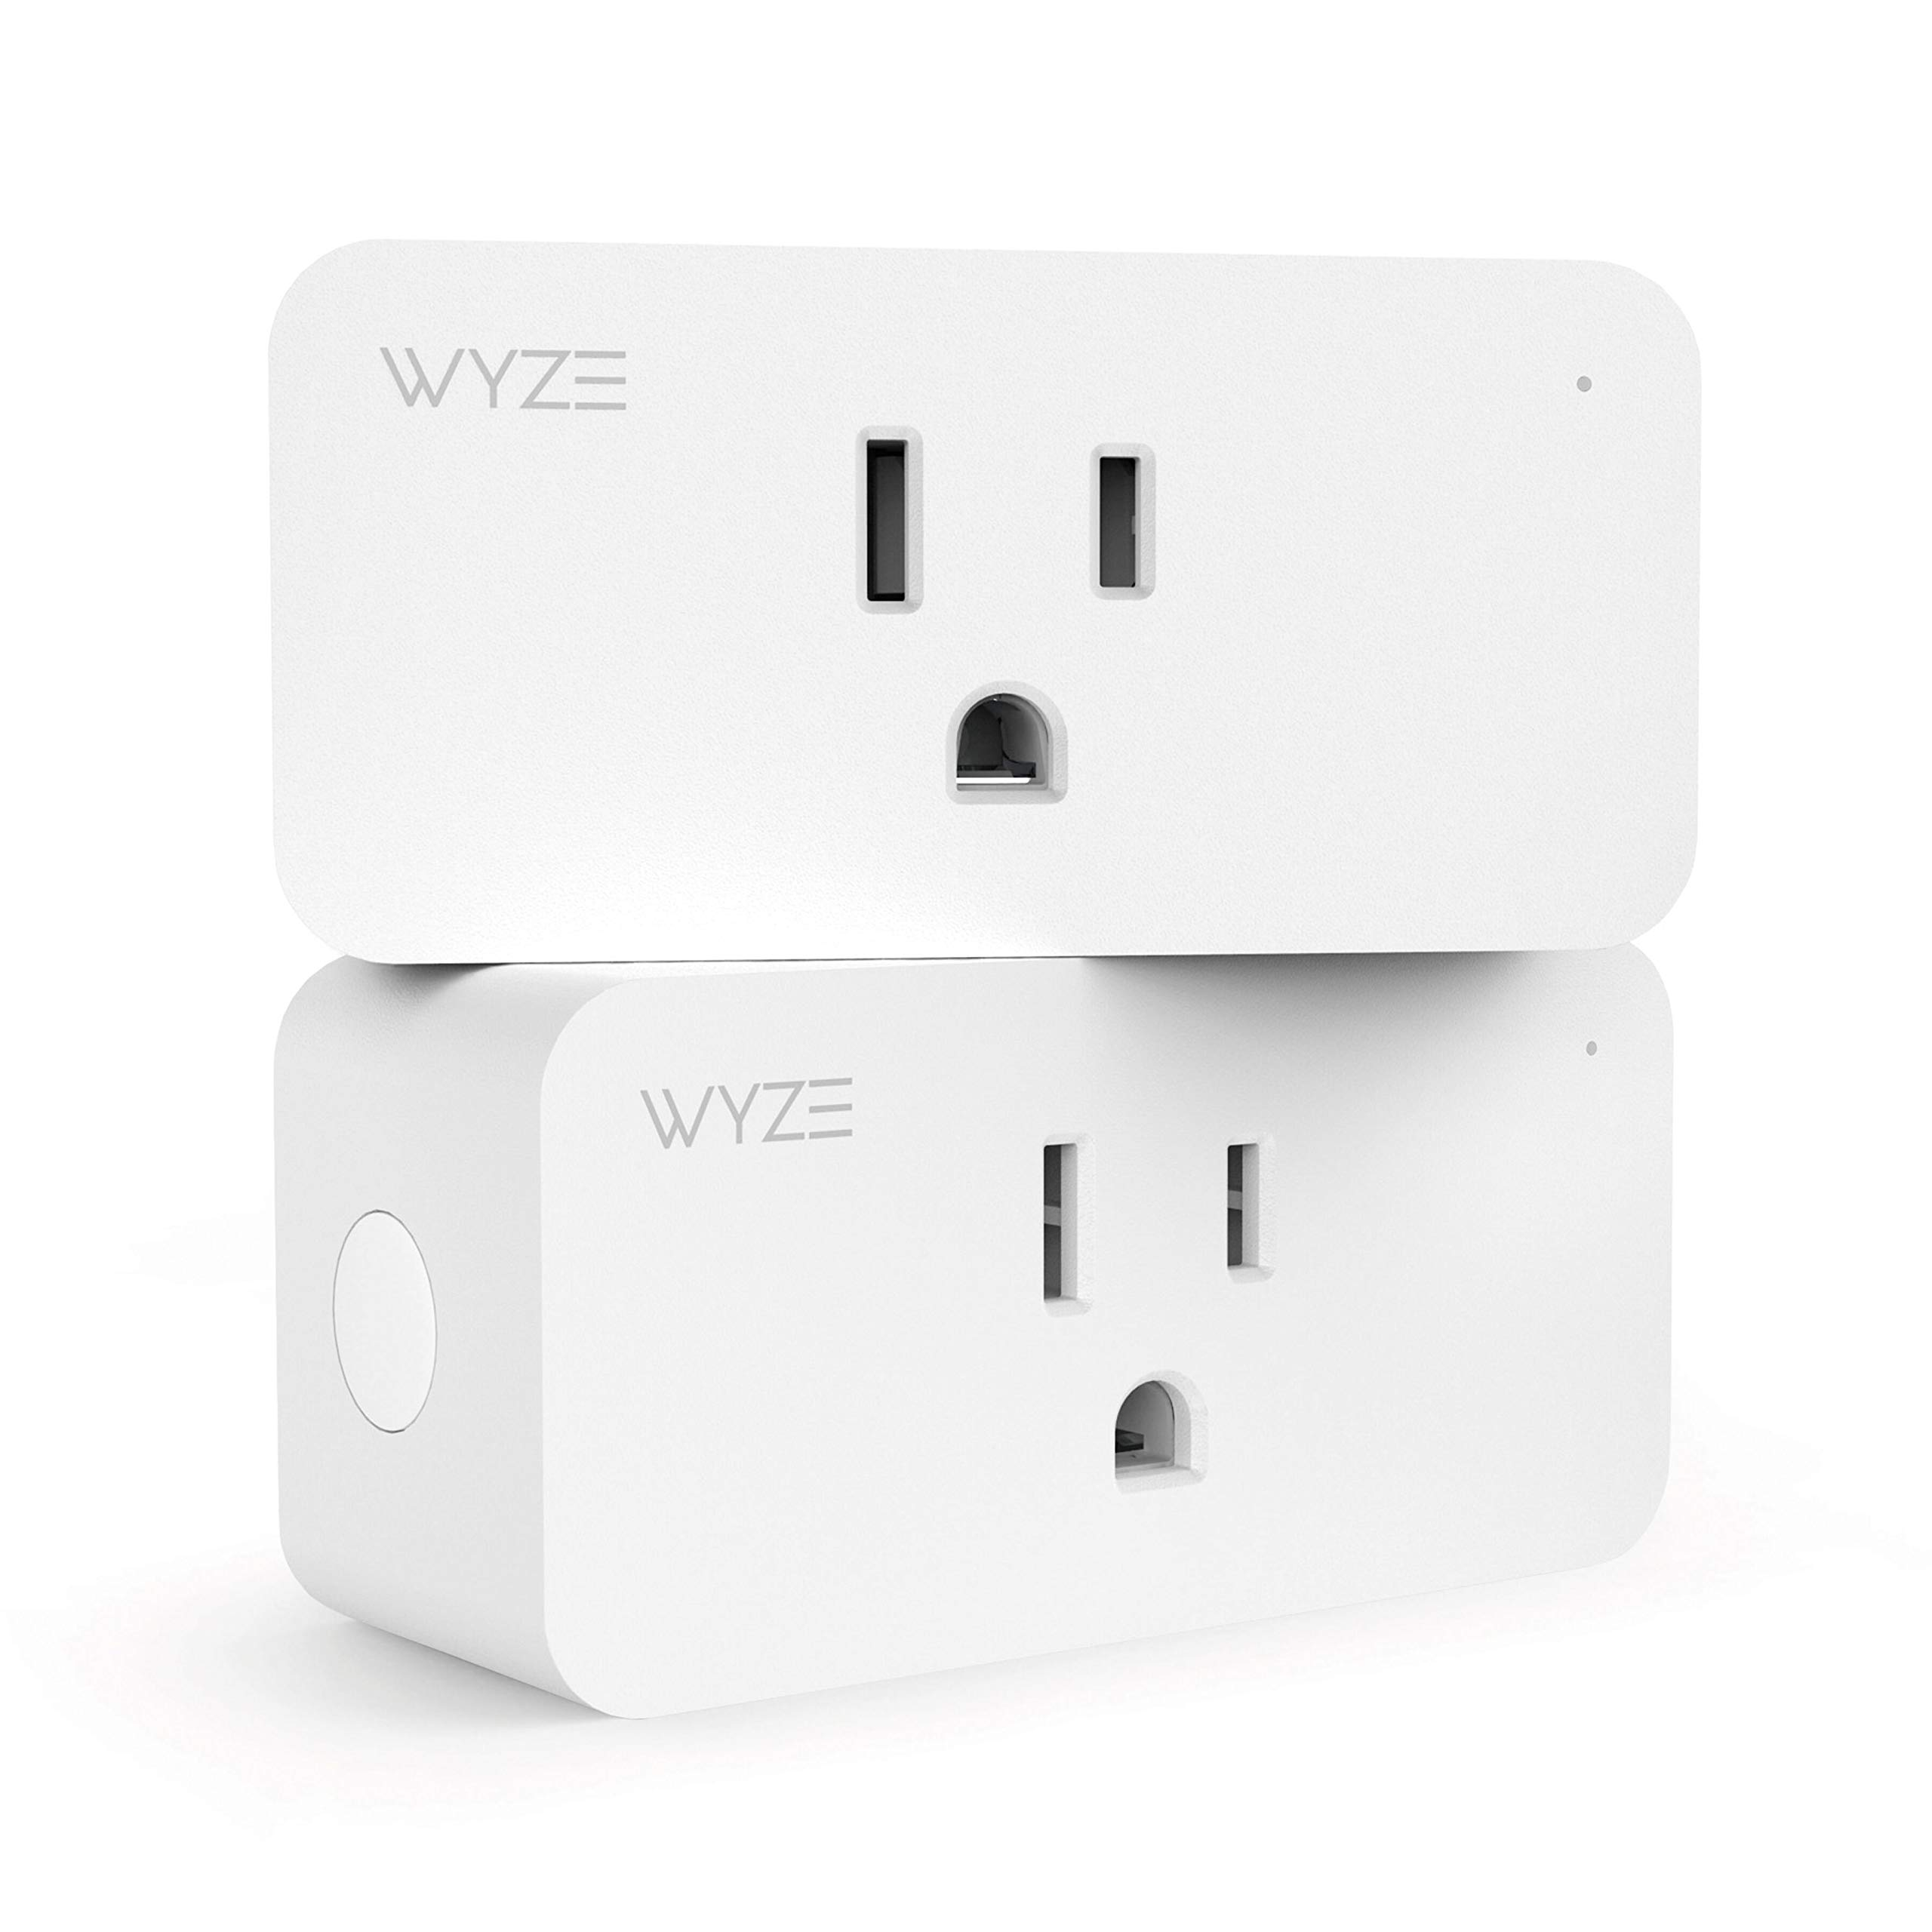 Wyze Labs Wlpp1 Smart Home WiFi Plug, Voice Assistant Controlled Alexa and Google Assistant Enabled with Timer and Vacation Mode, 2-Pack, White by Wyze Labs